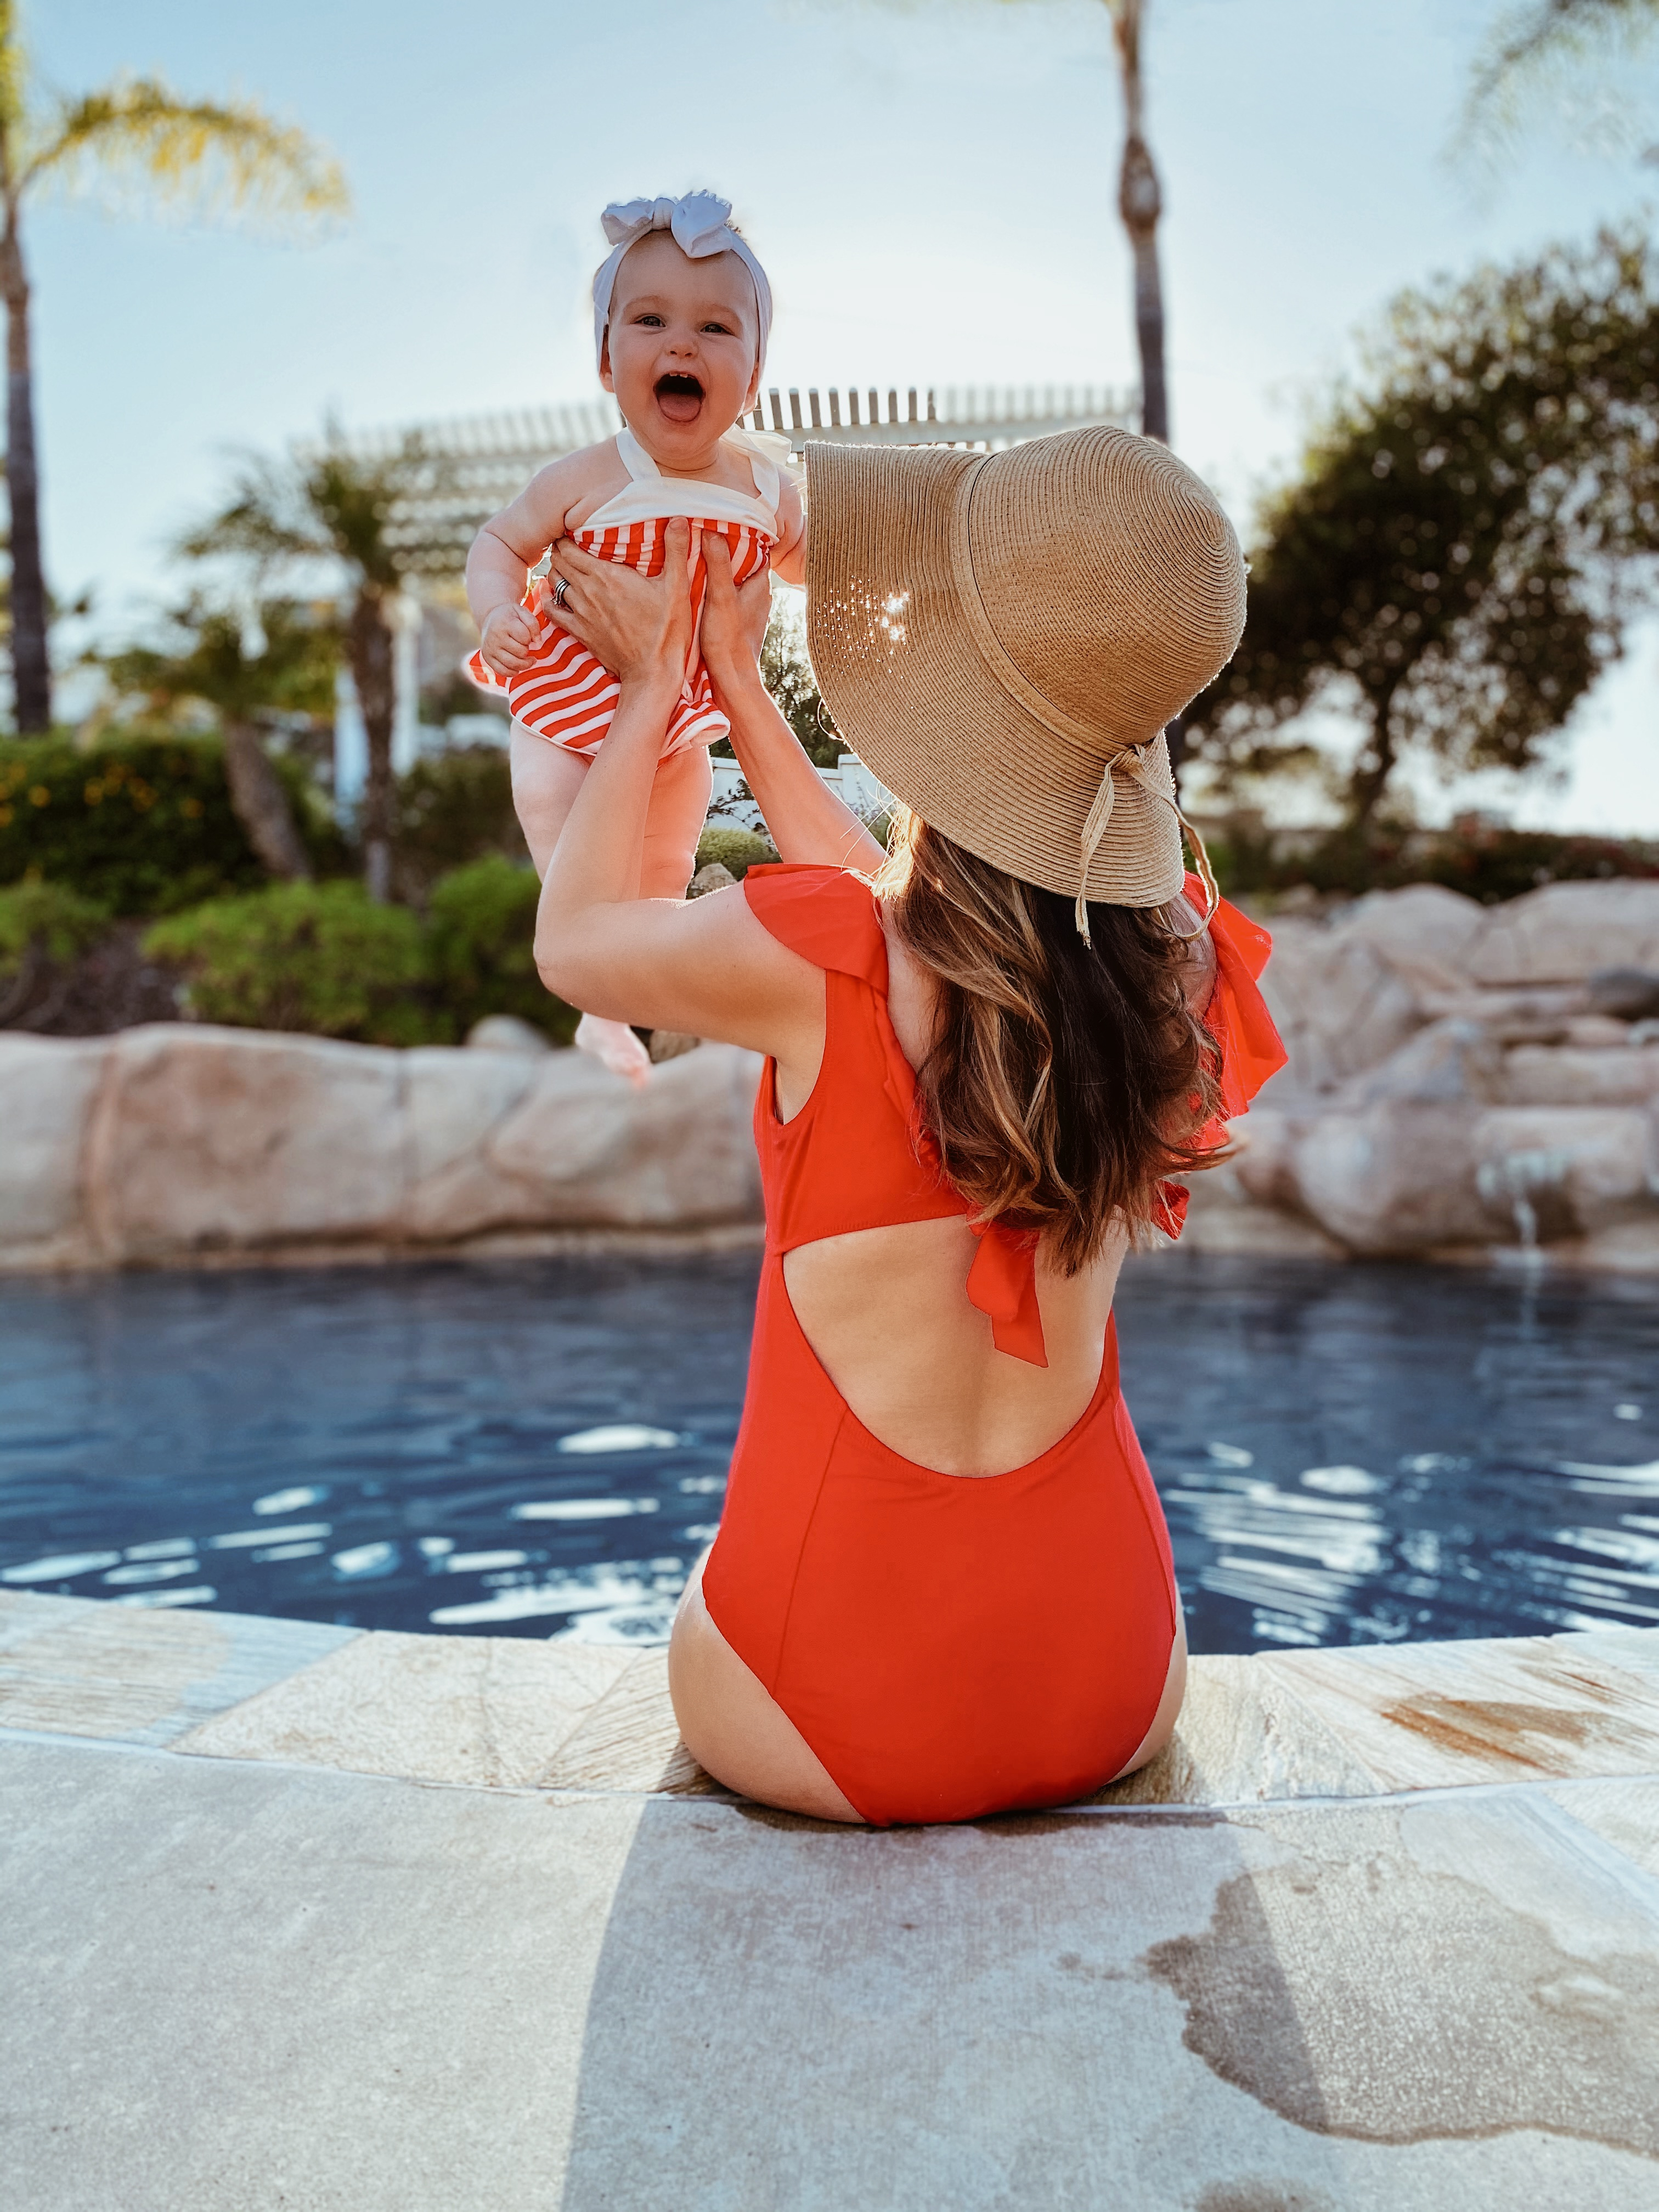 Fashion-Memorial Day Red Swimsuit full coverage one piece mother daughter beach photos matching swimsuits 4th of july pool looks